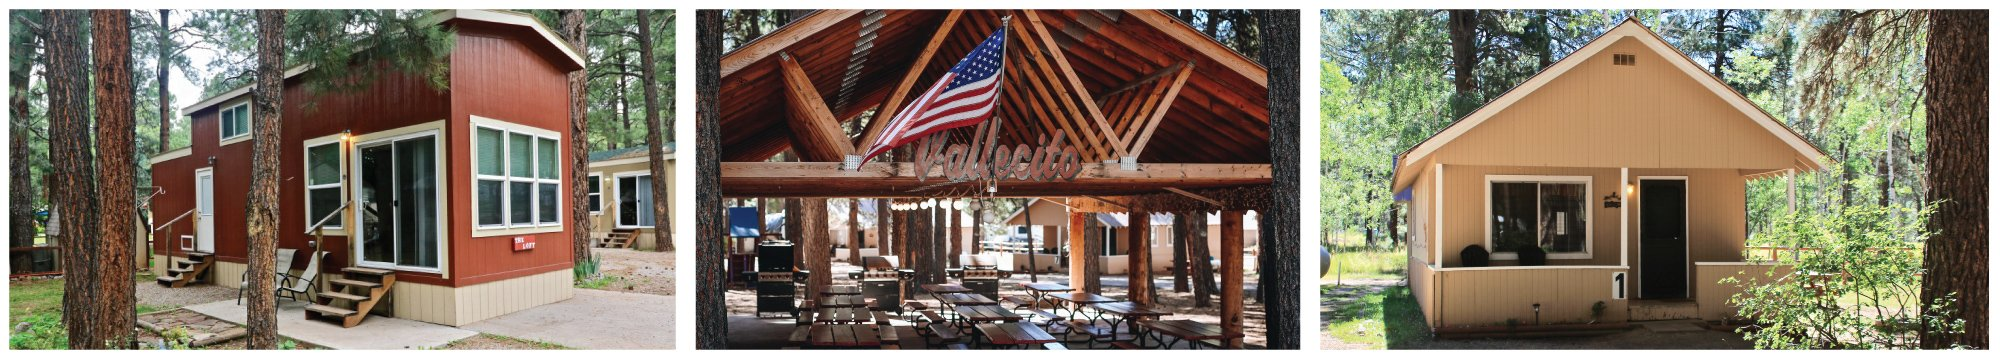 Vallecito Resort cabin rentals and rv hookup in bayfield